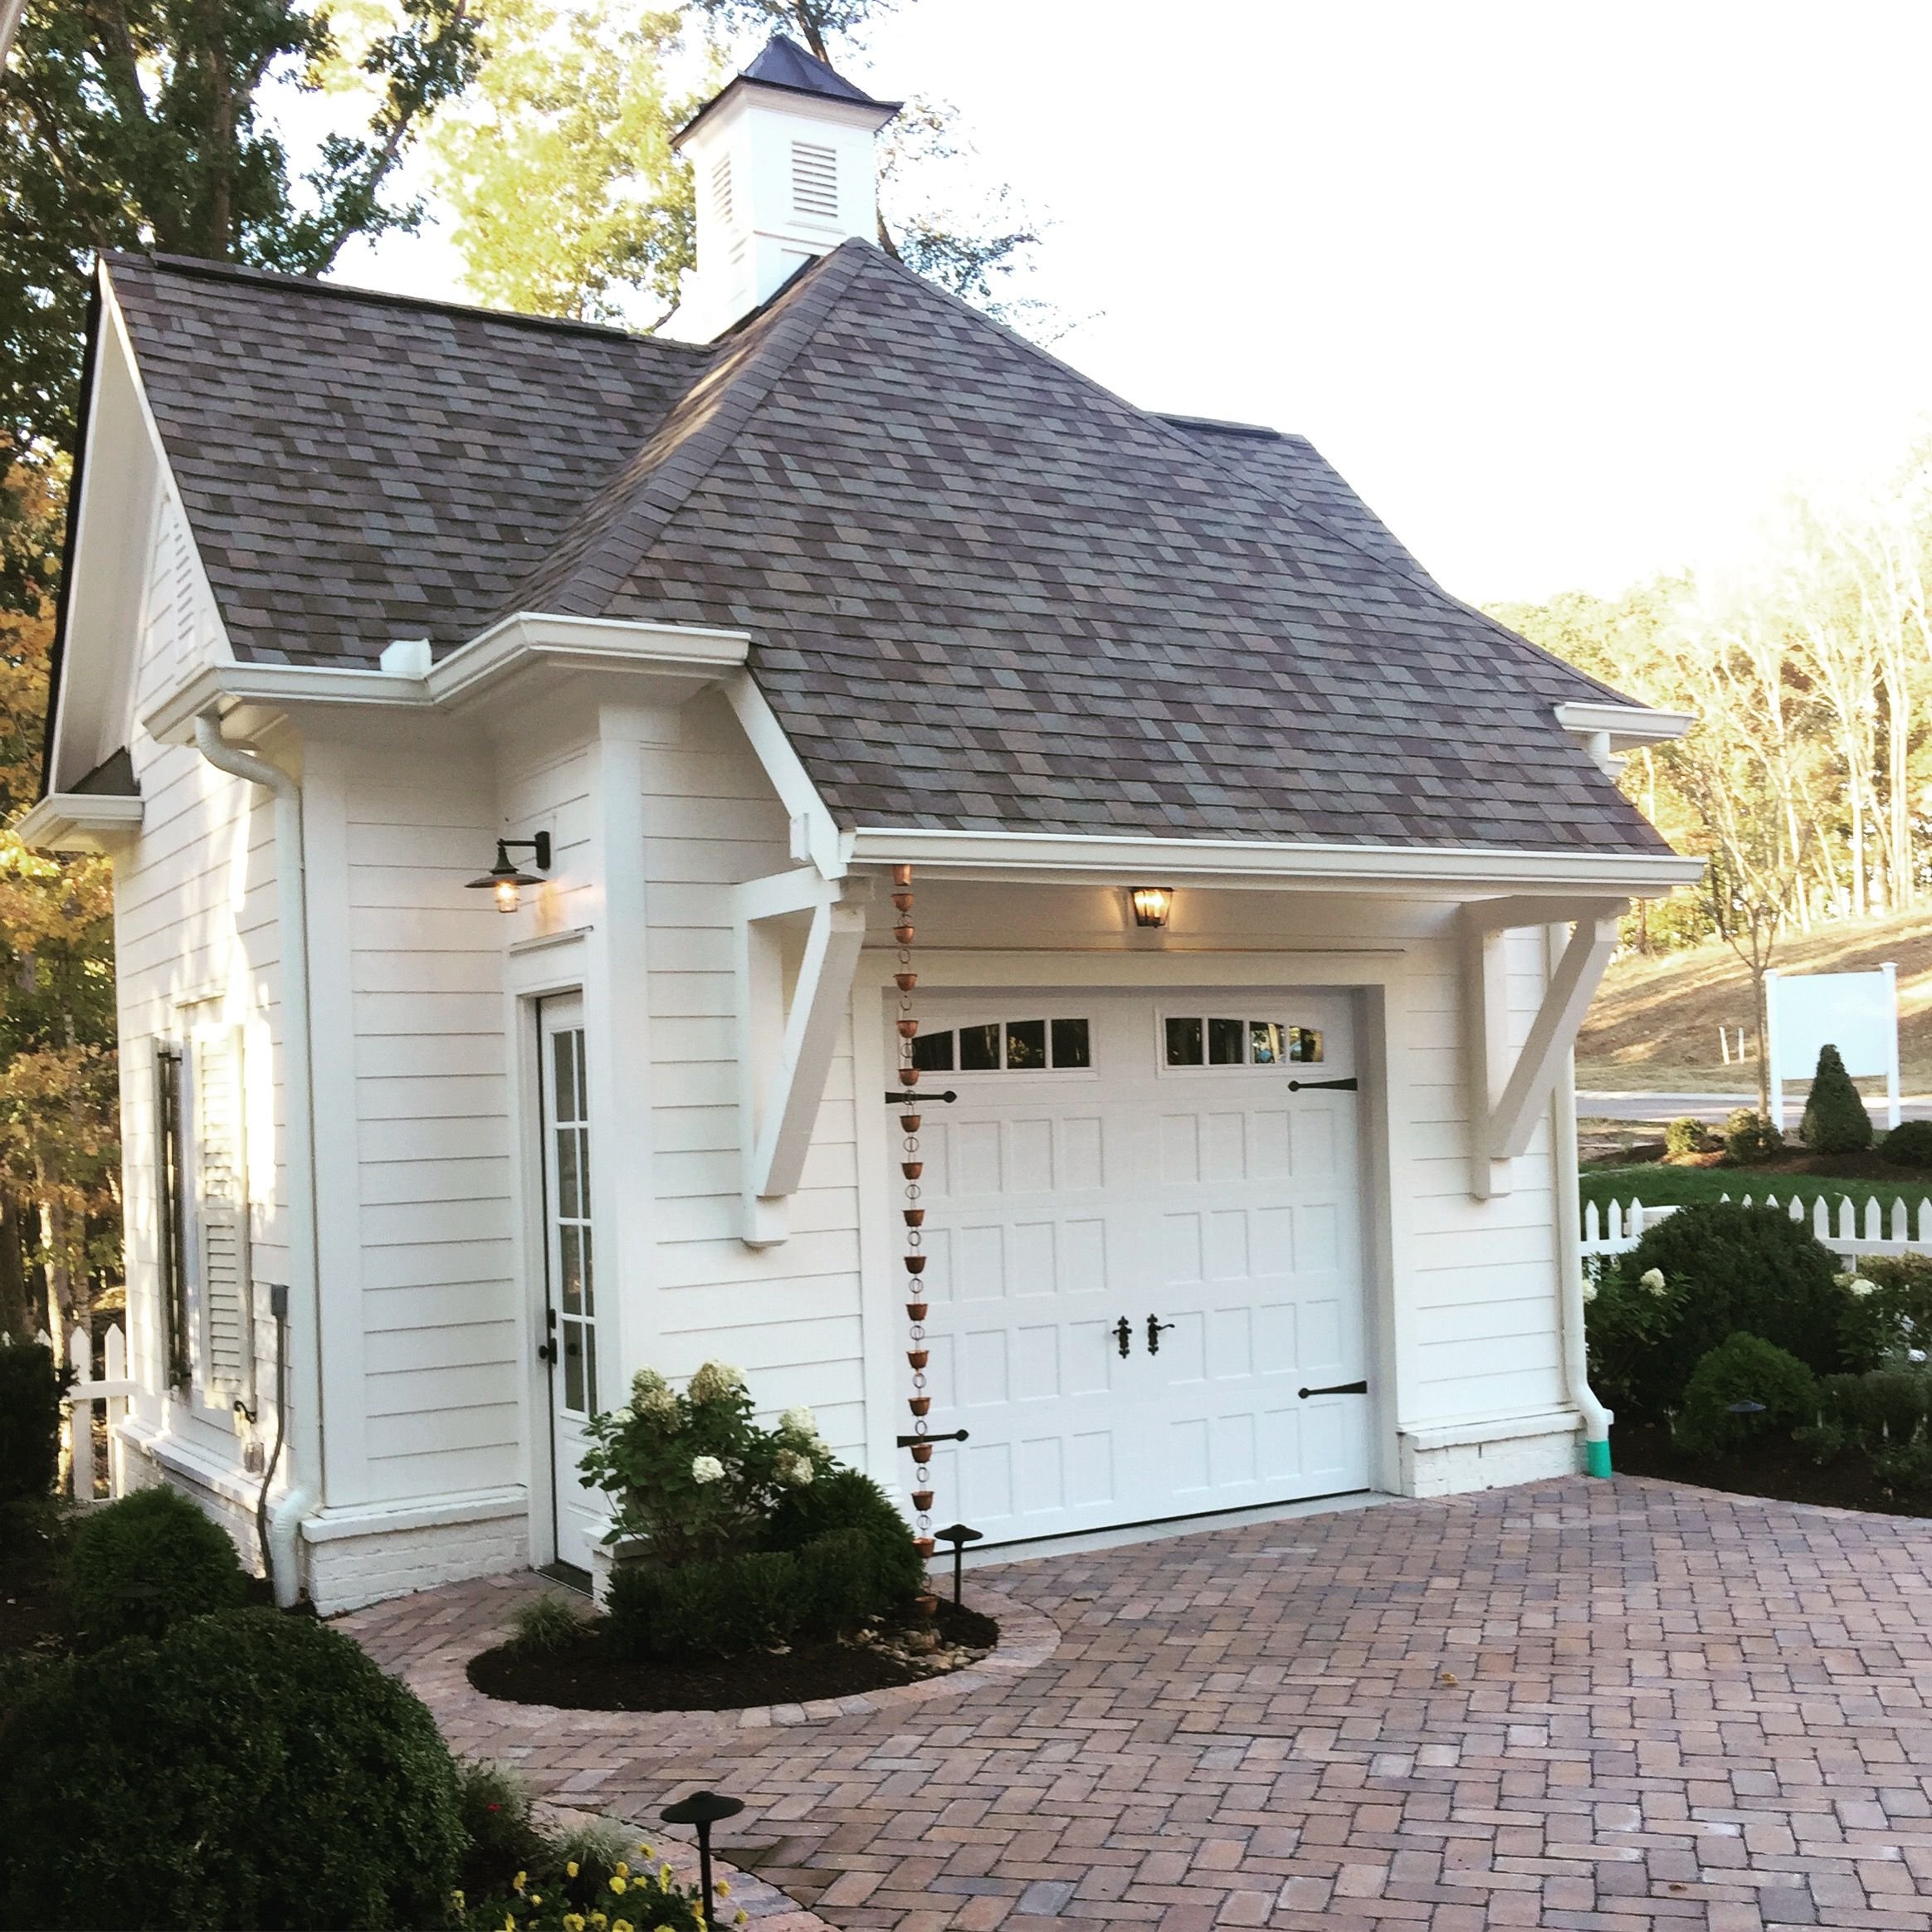 Top 60 Best Detached Garage Ideas: Amazing Detached Garage Of Our 2017 Southern Living